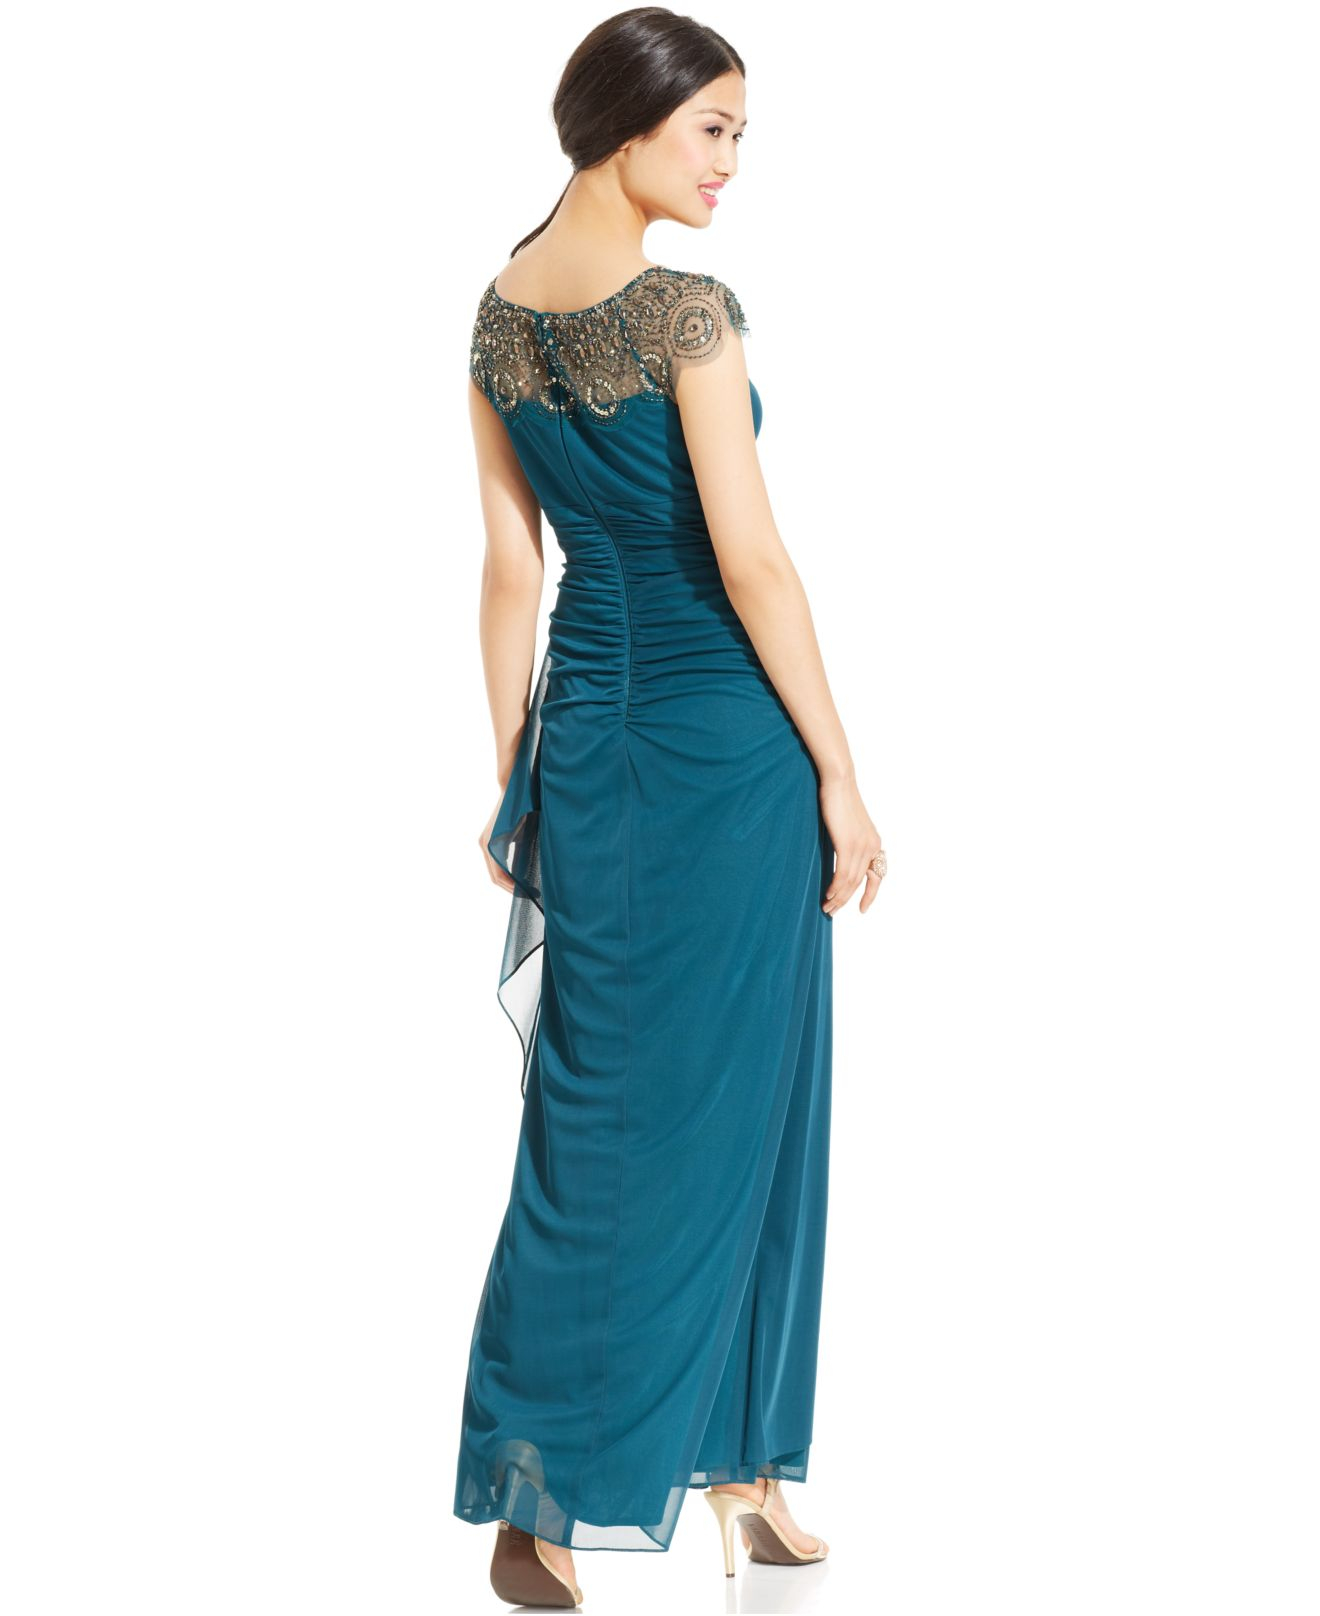 Lyst - Xscape Petite Cap-sleeve Illusion Beaded Gown in Green